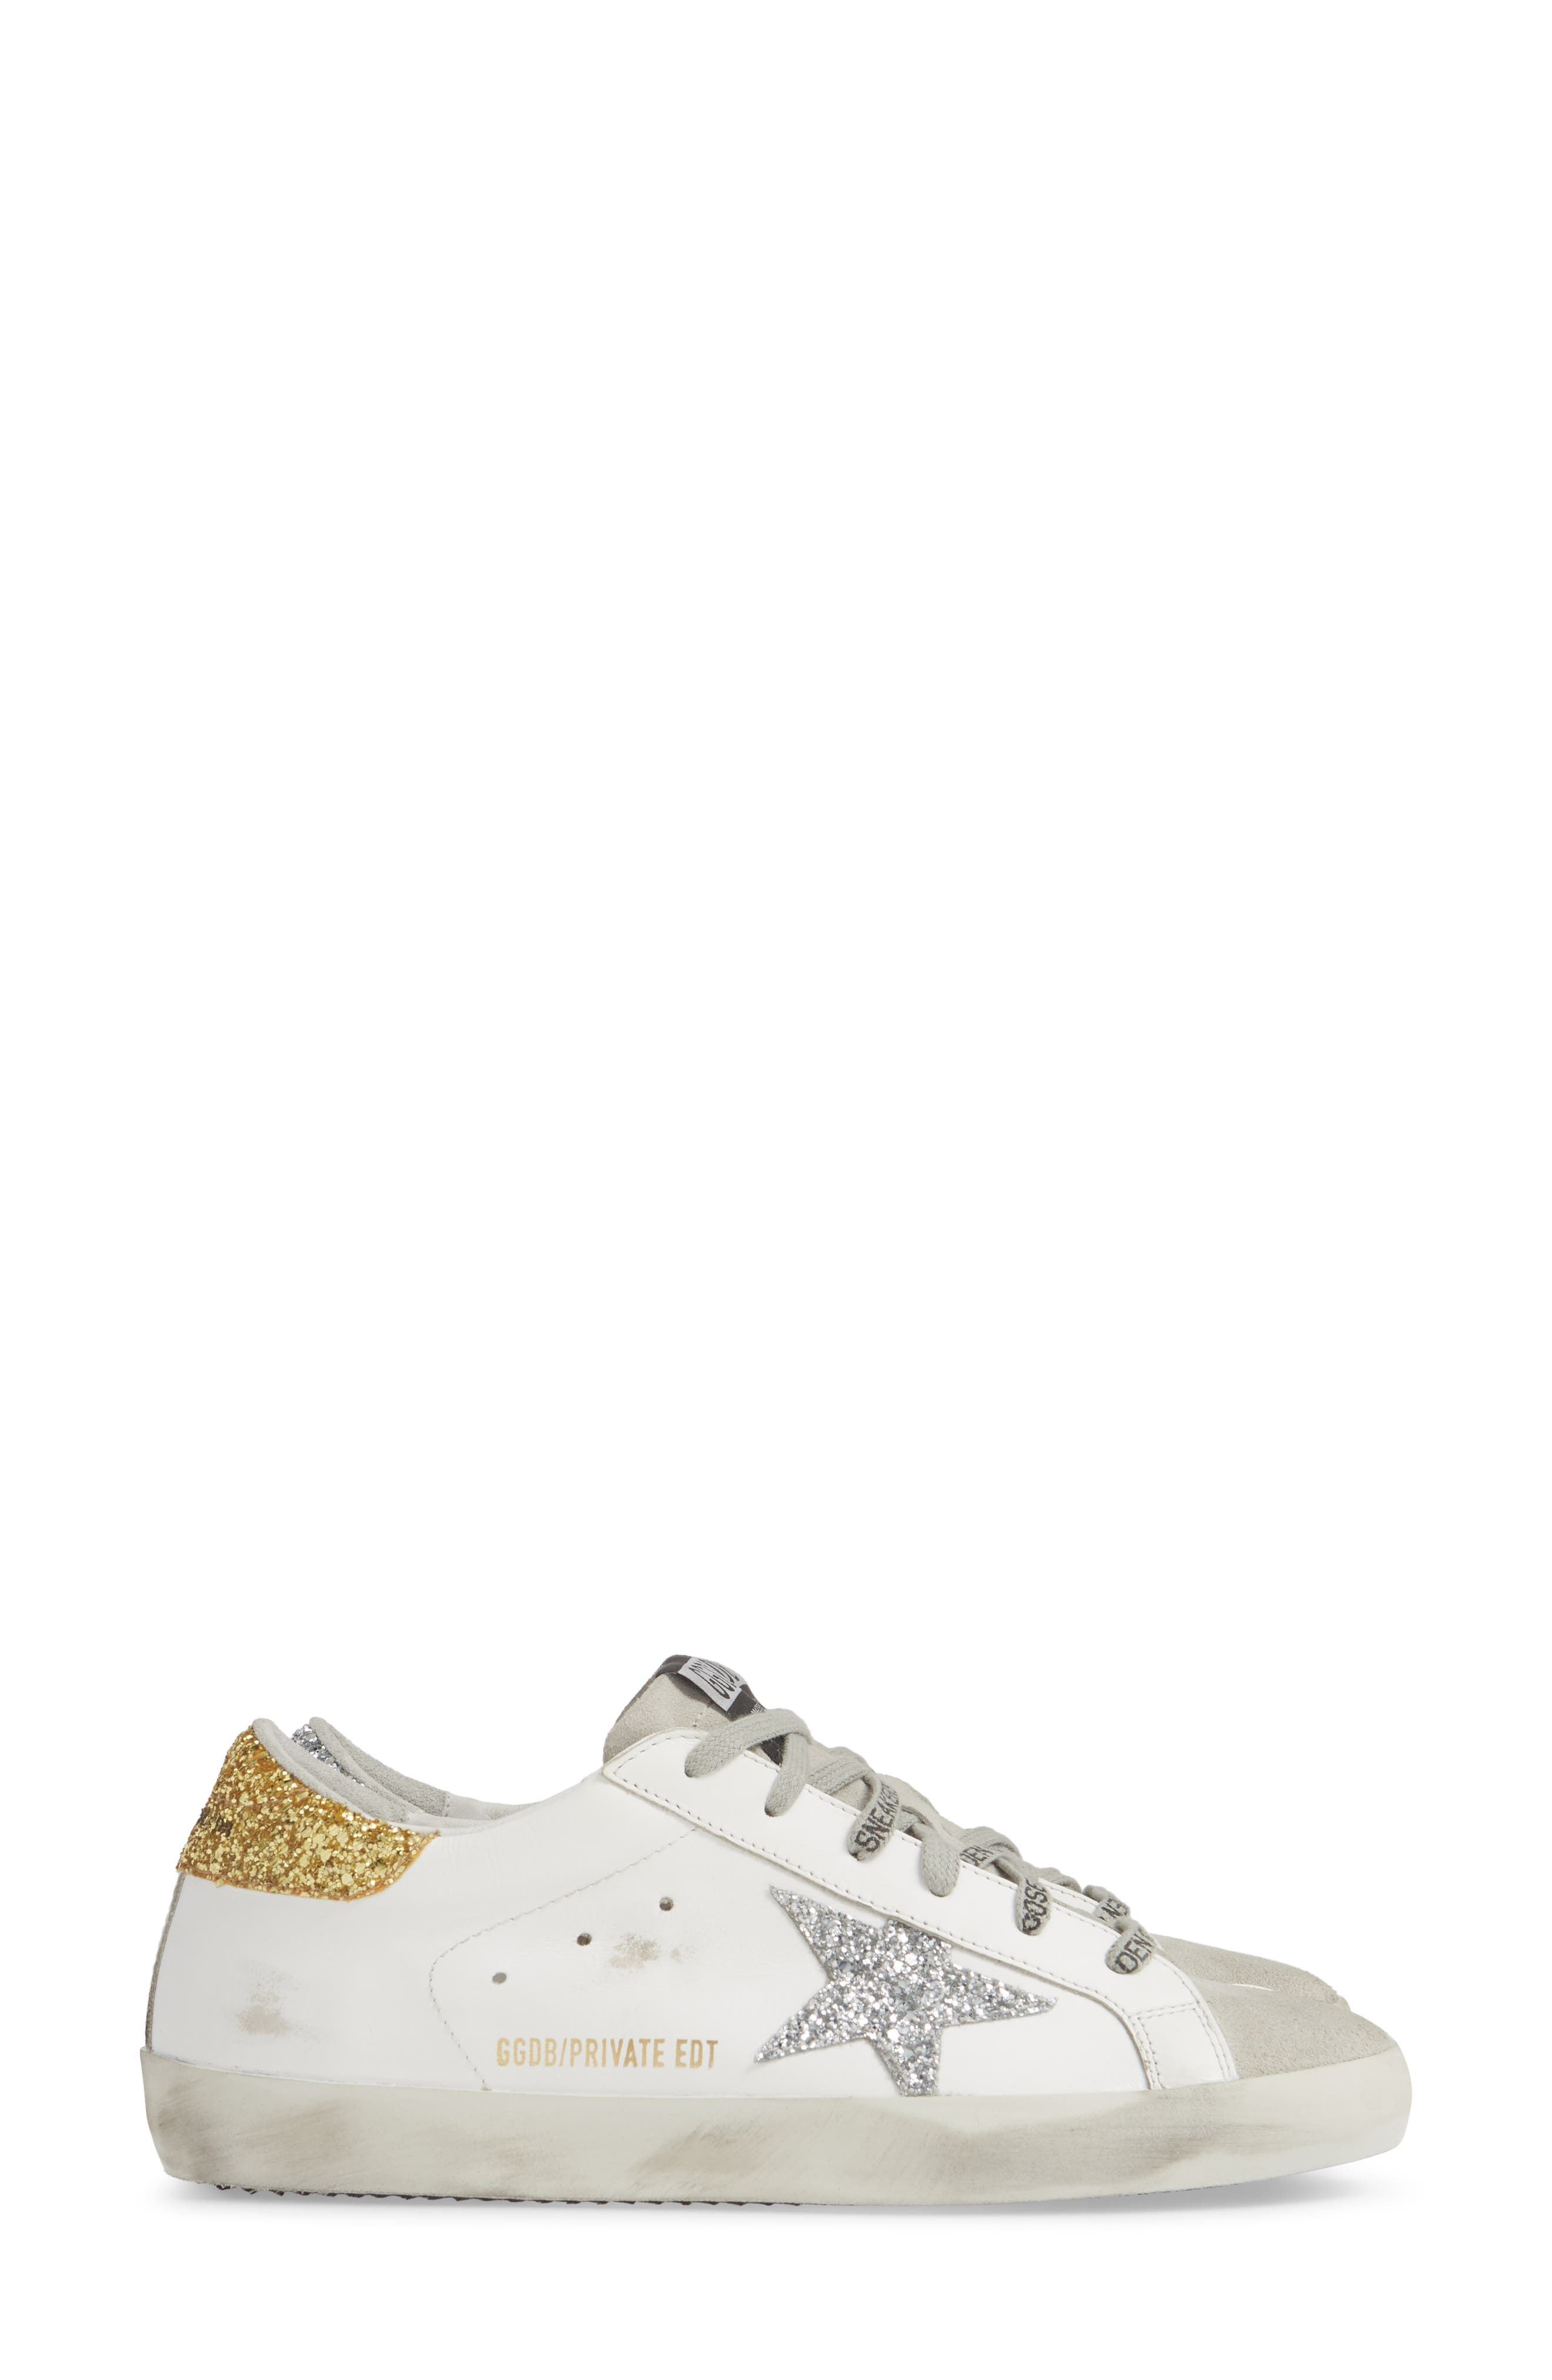 Superstar Low Top Sneaker,                             Alternate thumbnail 4, color,                             WHITE/ GOLD/ SILVER